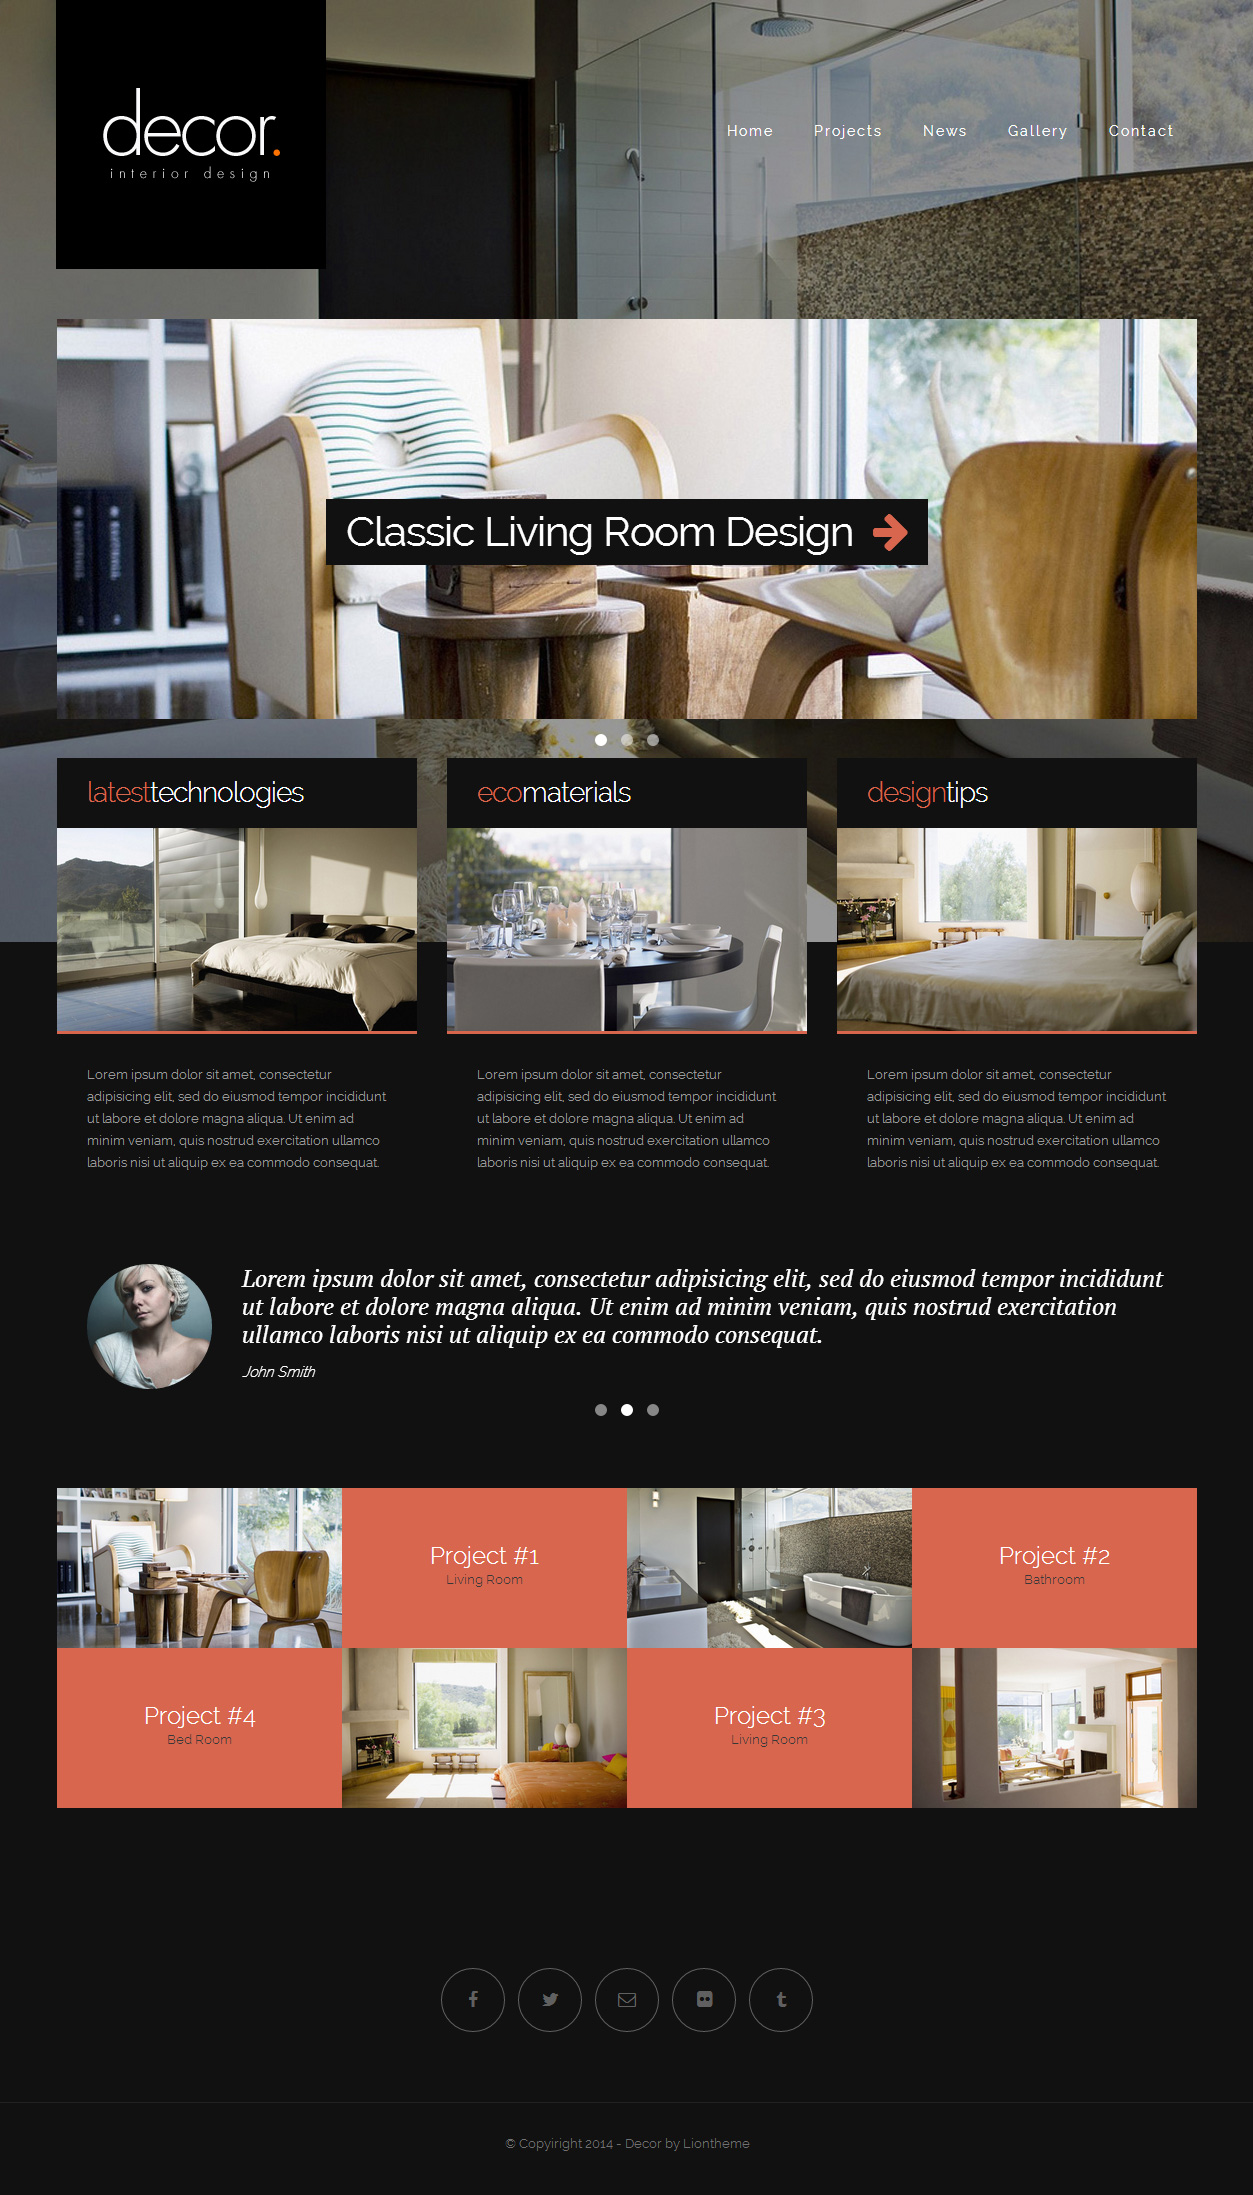 Decor Is Responsive Website Template With Unique Design Build Latest Bootstrap Framework Compatible Almost All Screen Size From Desktop To